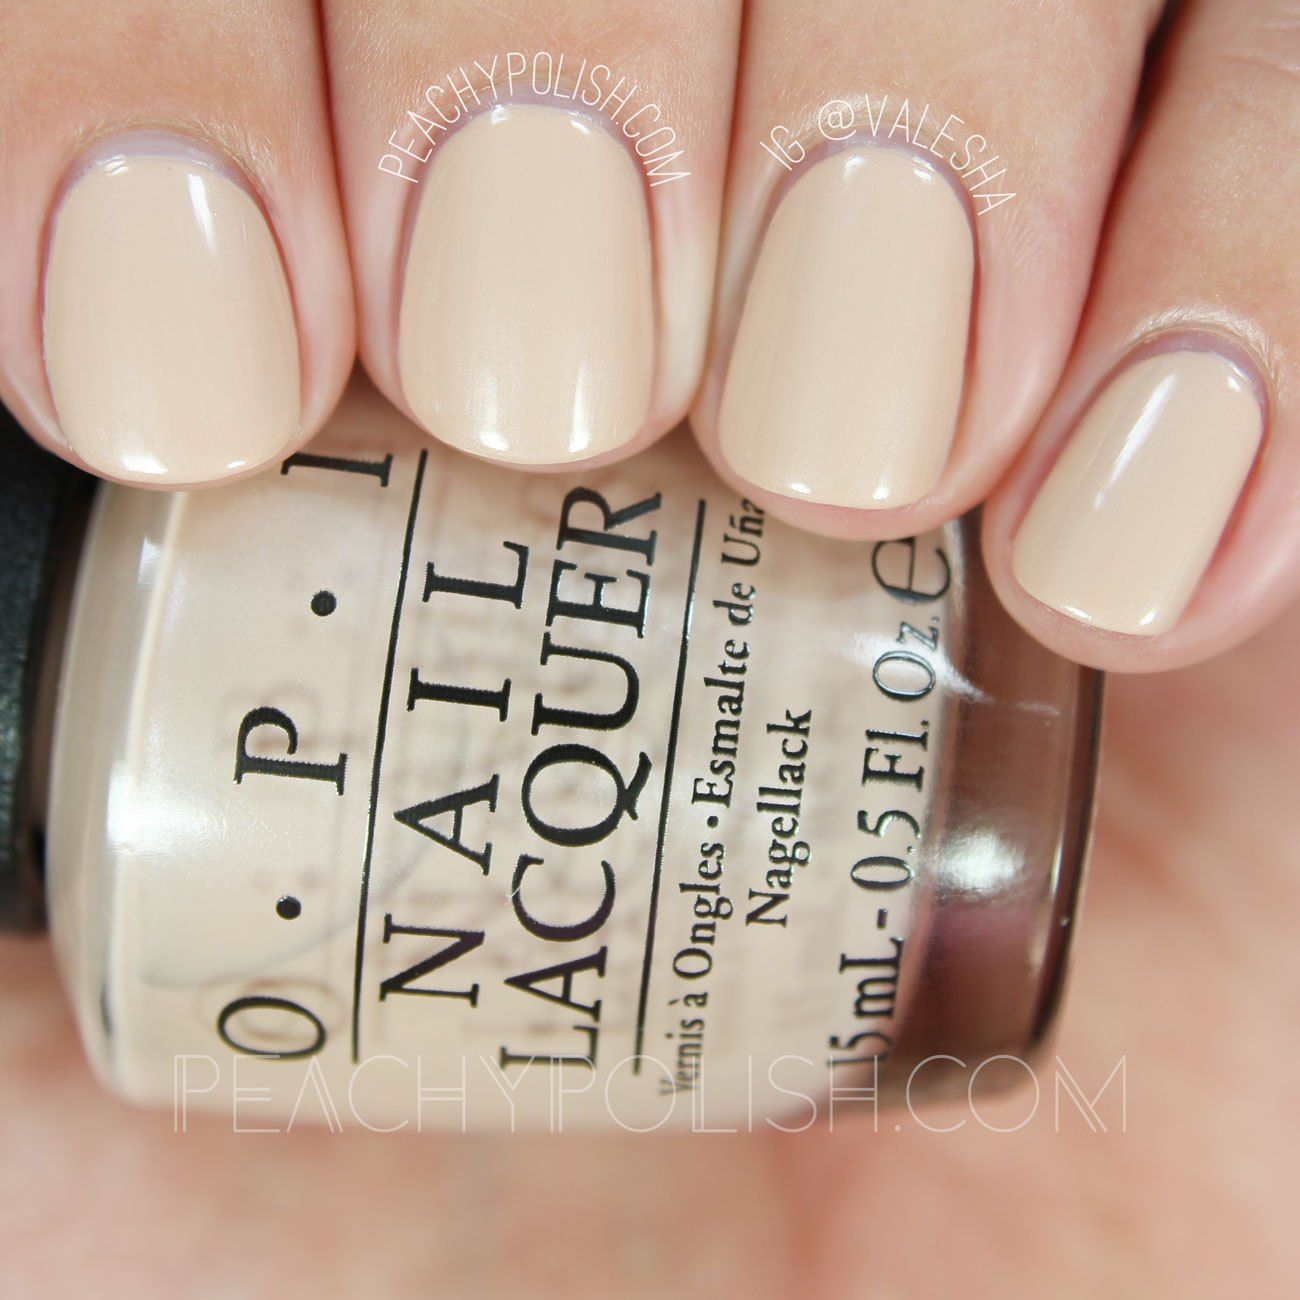 OPI Pale To The Chief | Fall 2016 Washington D.C. Collection ...